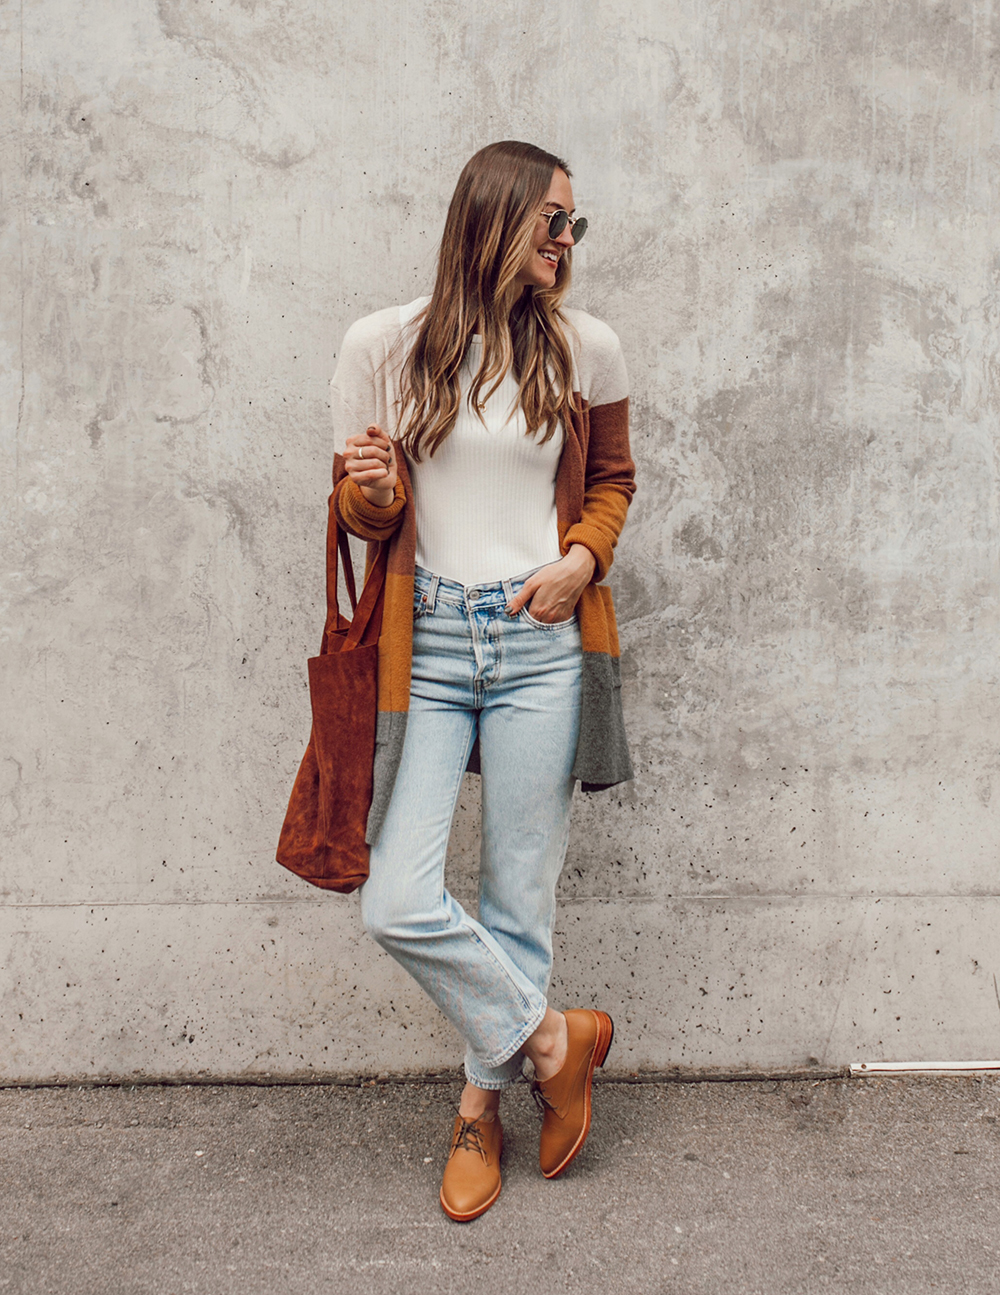 livvyland-blog-olivia-watson-austin-texas-fashion-lifestyle-blogger-nisolo-james-oxford-fall-outfit-idea-madewell-kent-cardigan-9